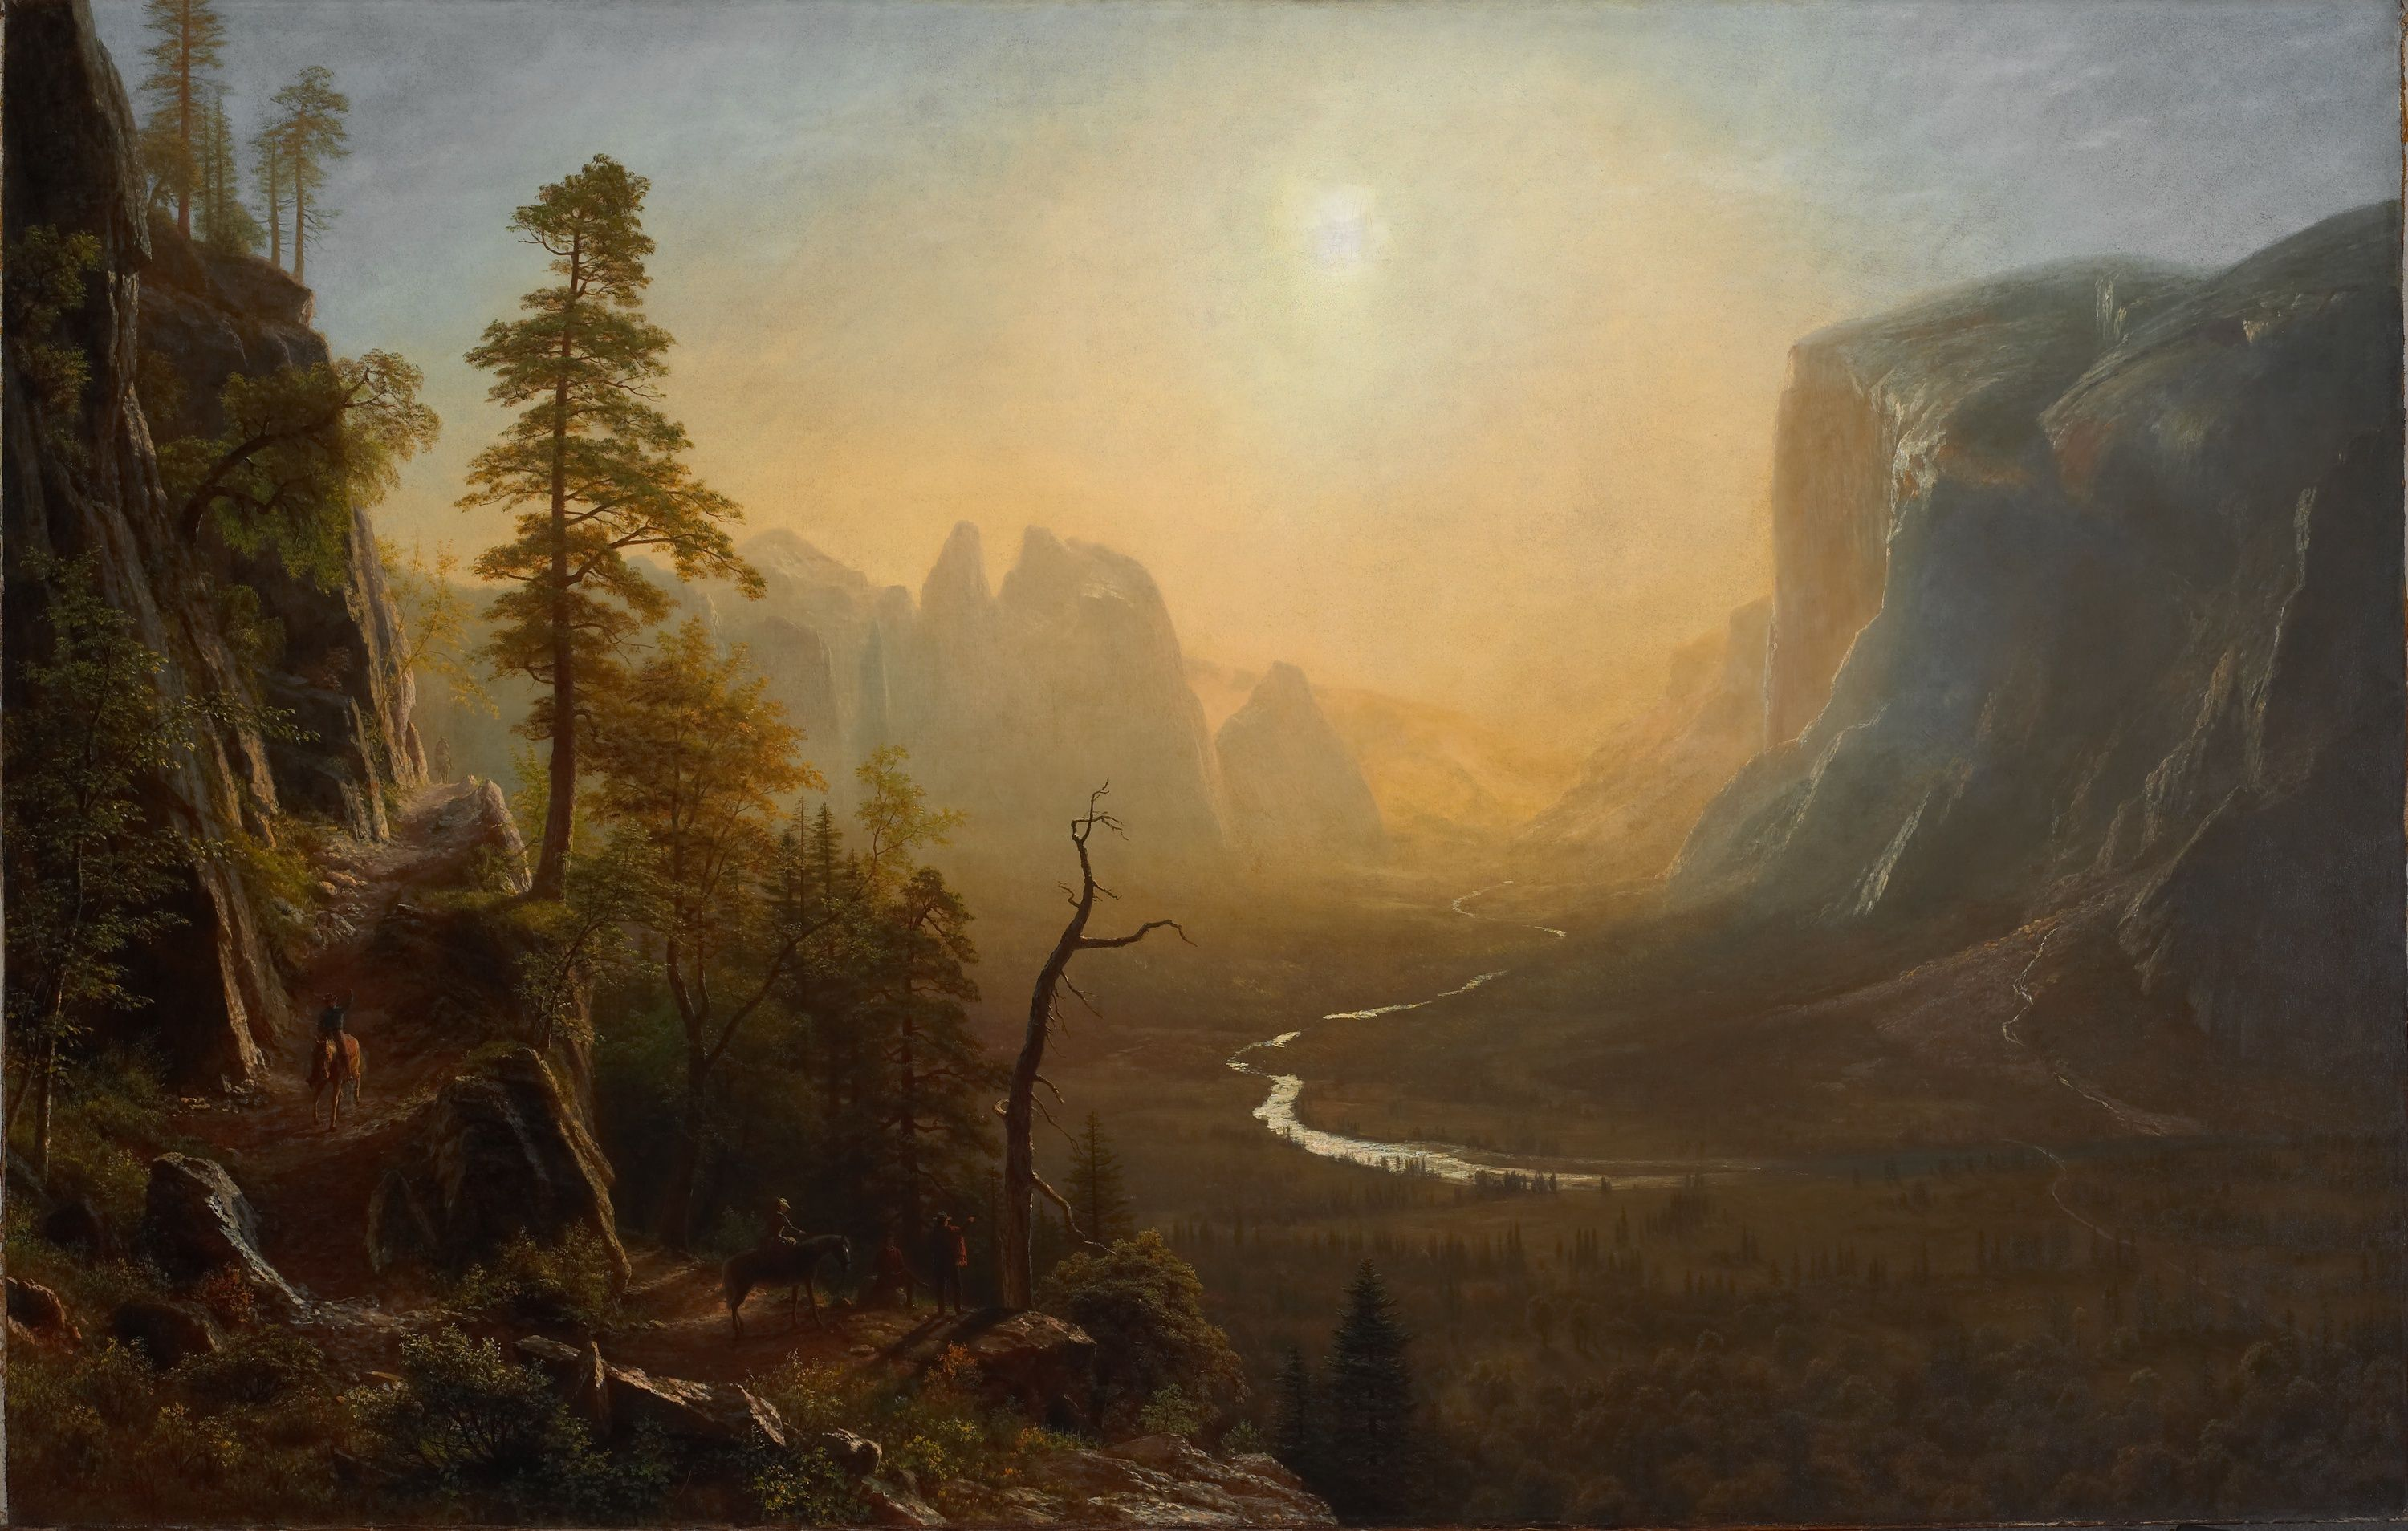 Yosemite_Valley_Glacier_Point_Trail_by_Albert_Bierstadt